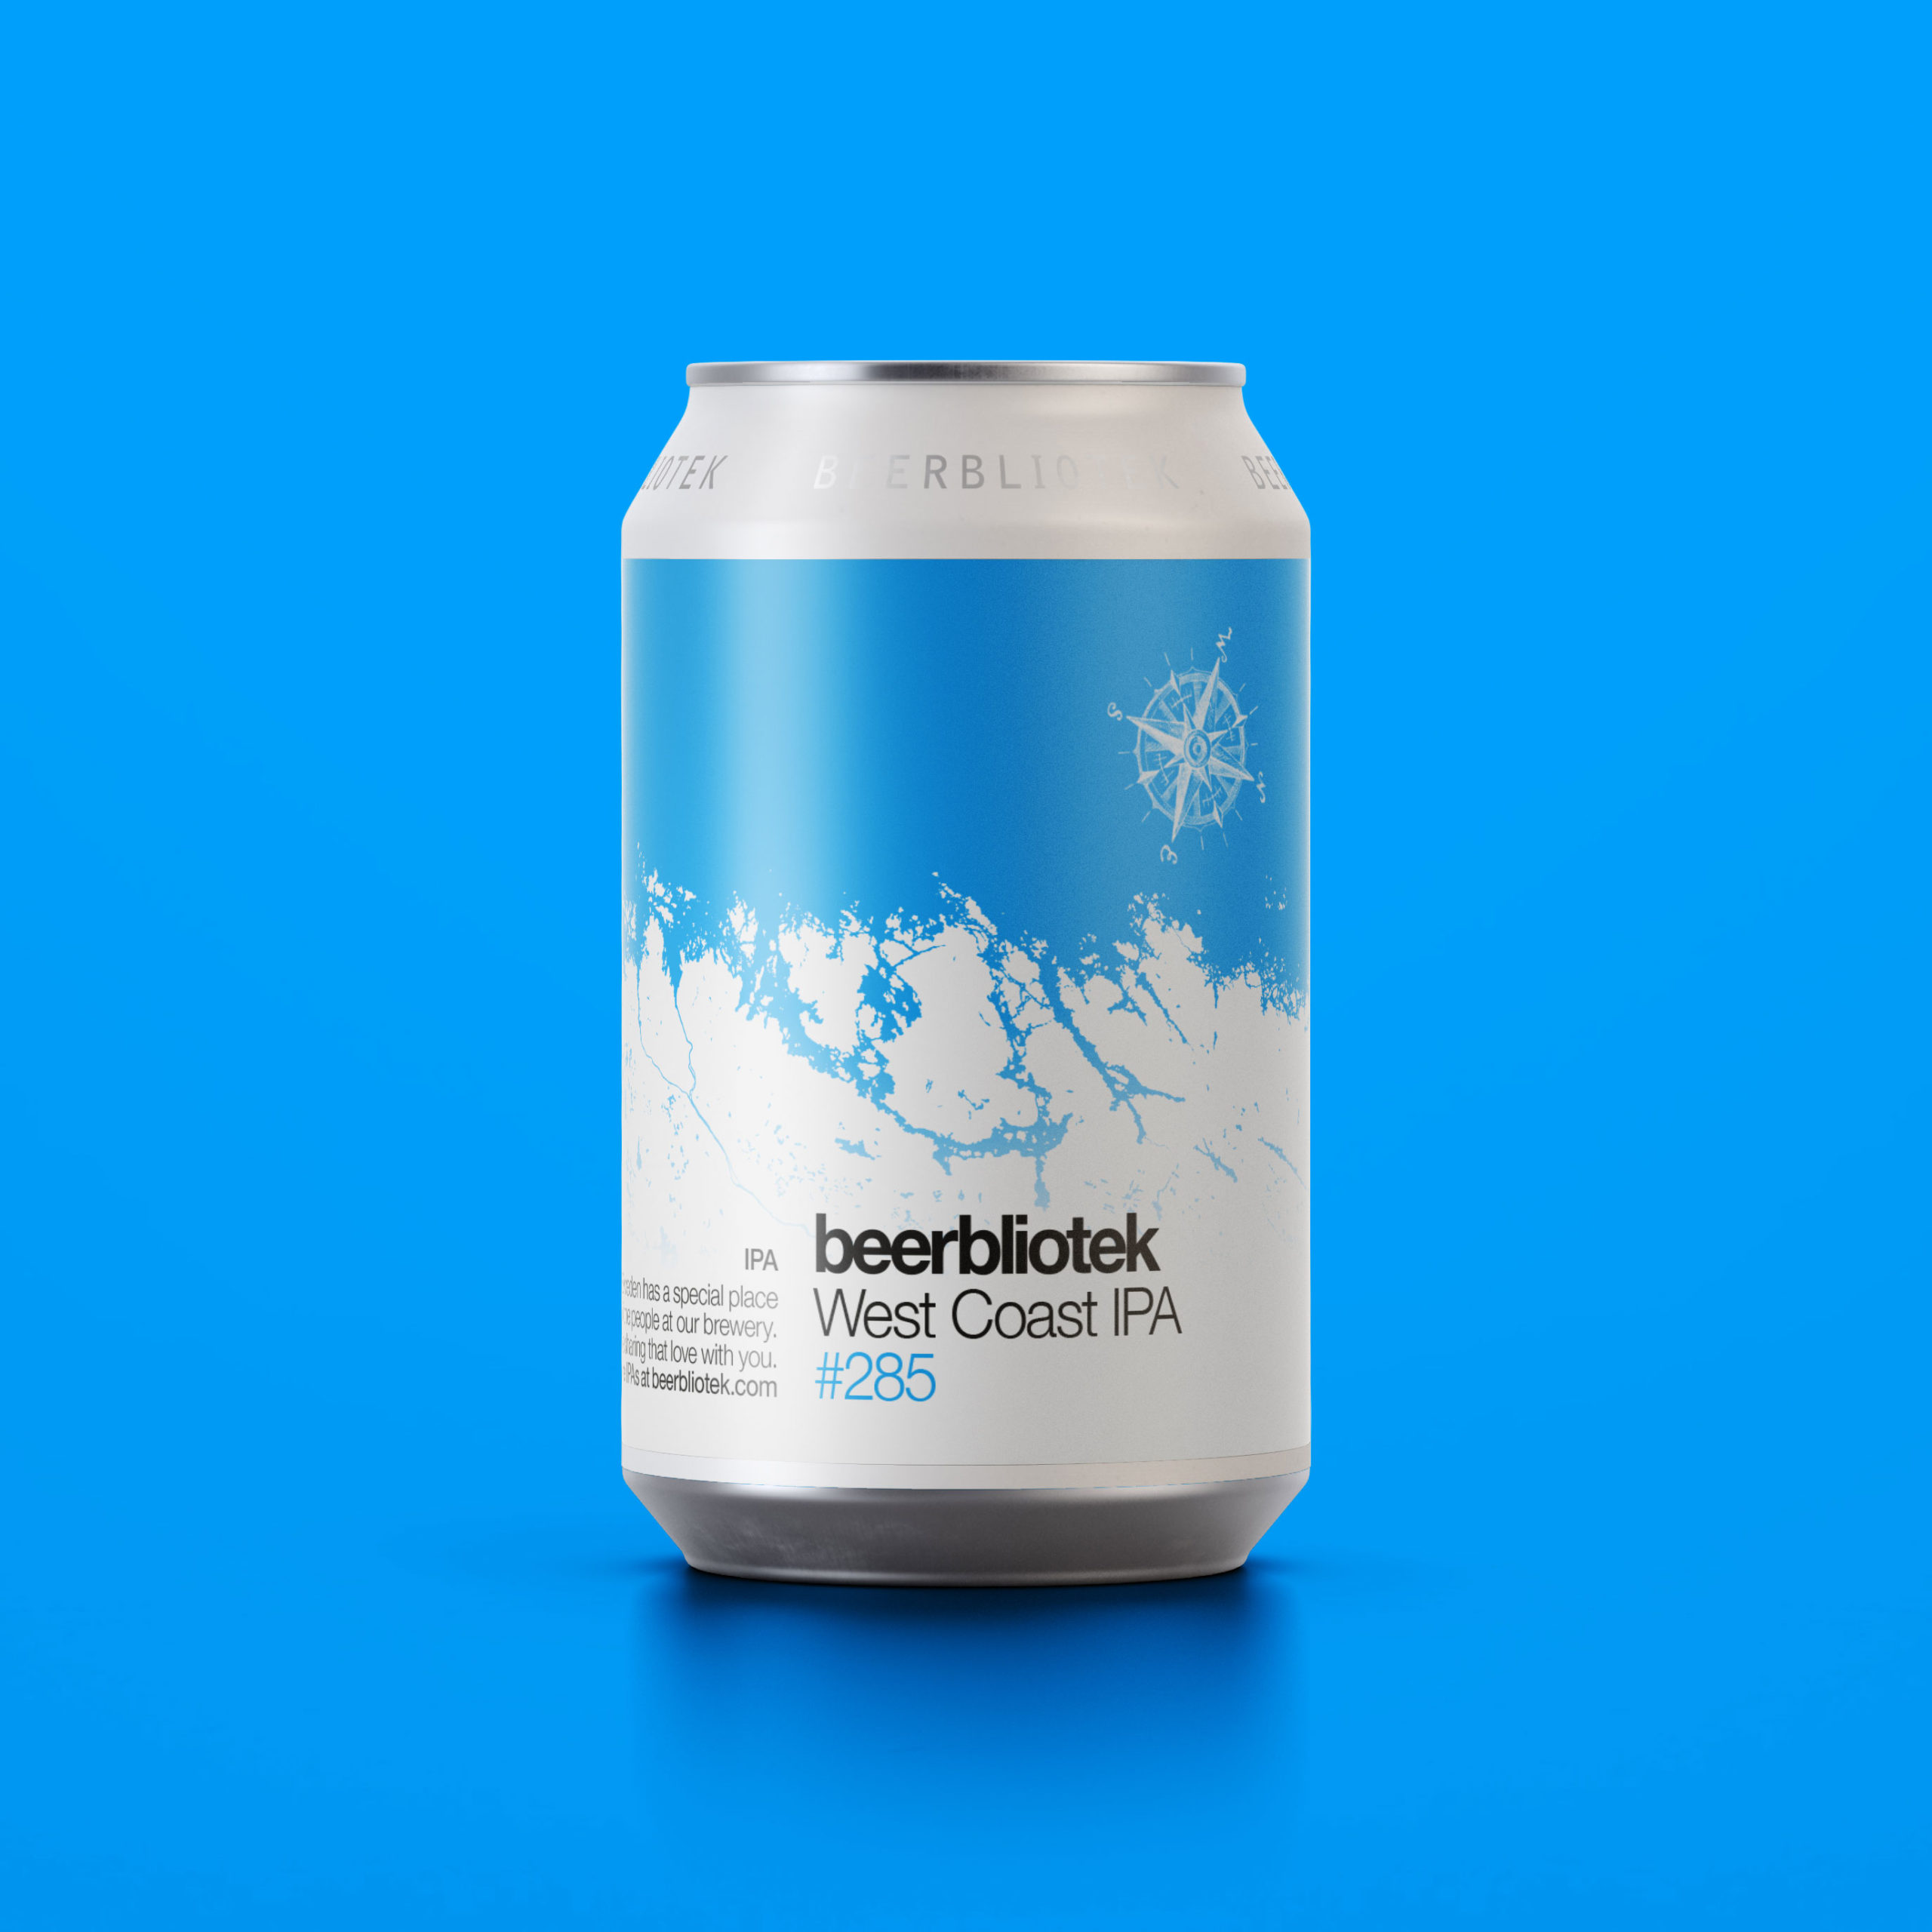 A can packshot of West Coast IPA, with a blue background, an IPA from Swedish Brewery Beerbliotek.